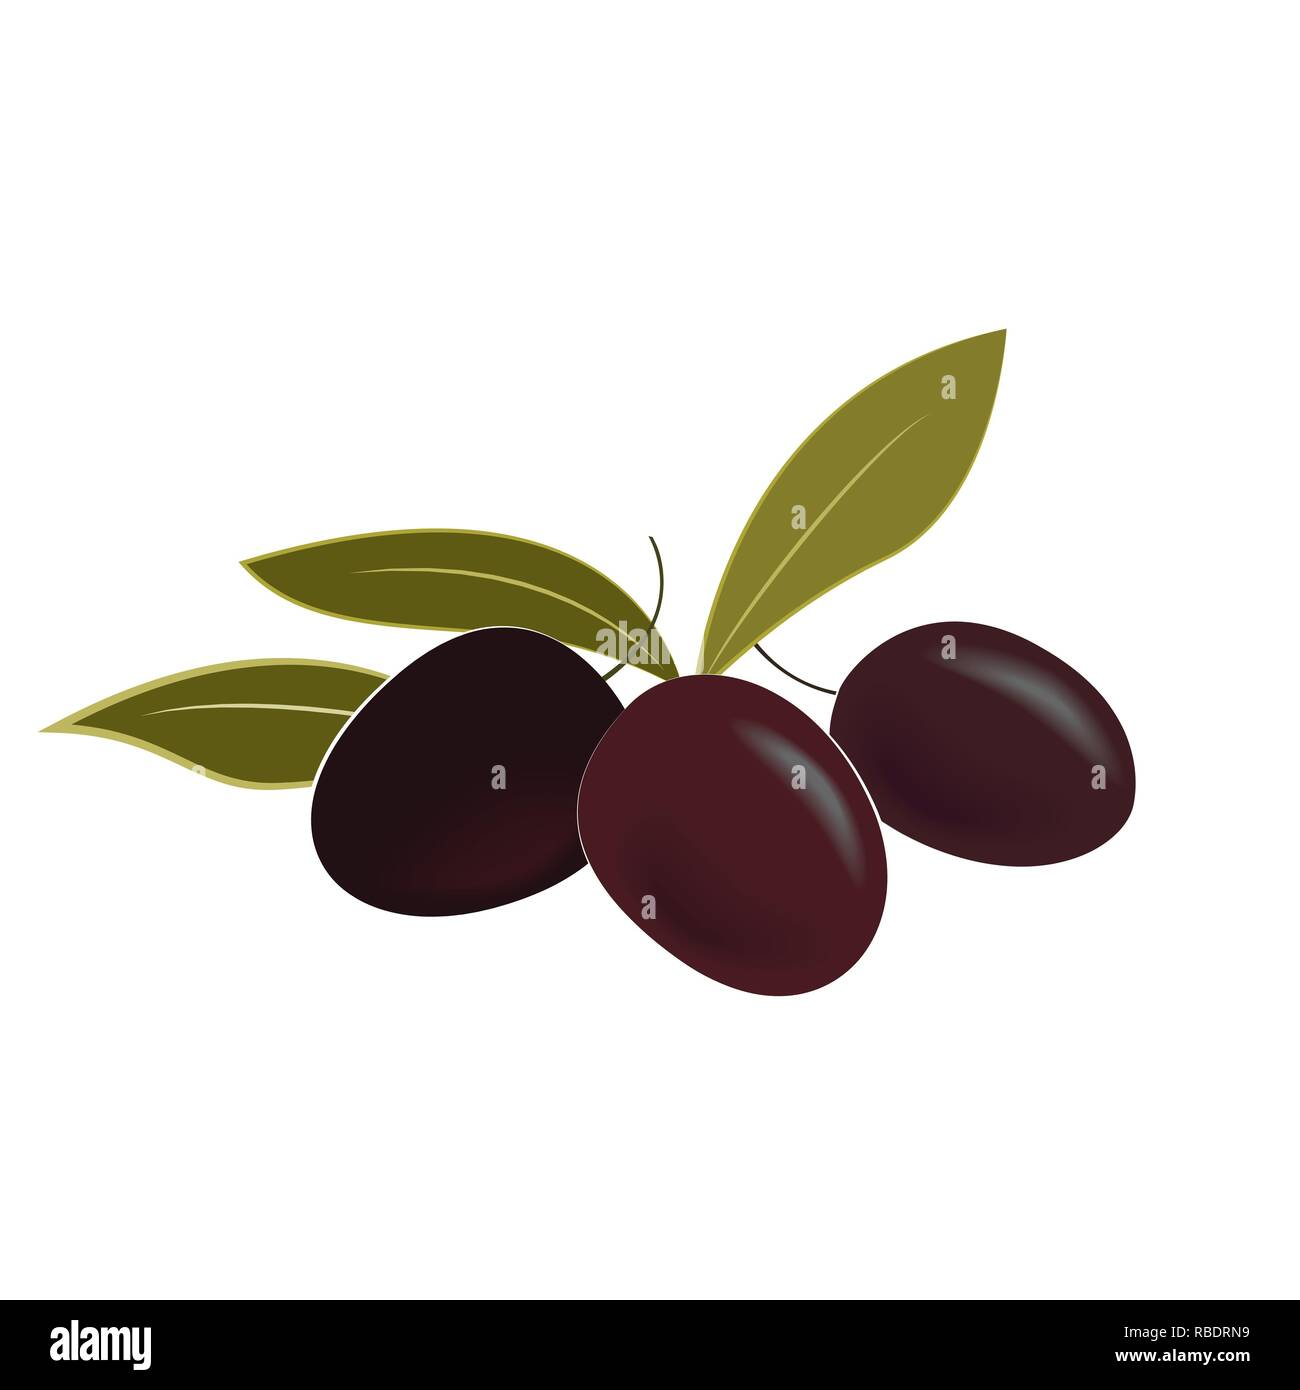 Vector illustration of ripe olives and leaves. Isolated design element.. - Stock Vector